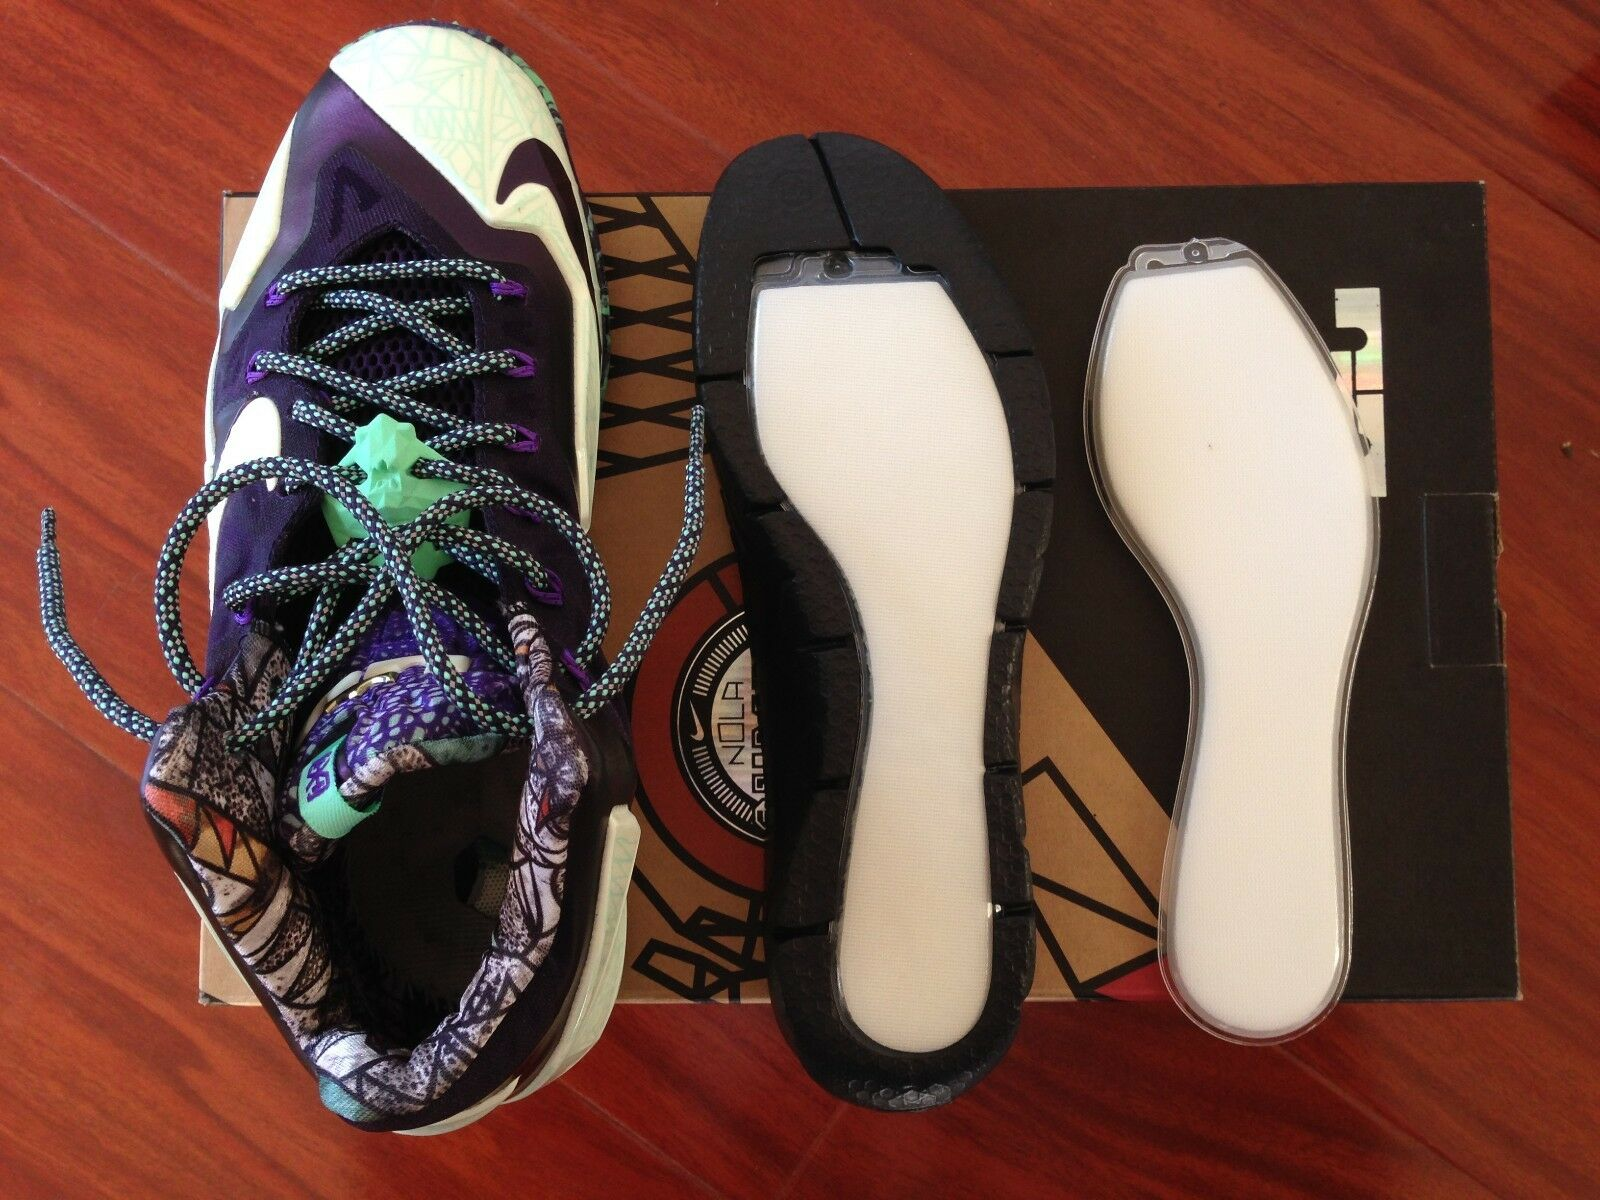 New Generation of Nike Zoom Air insole